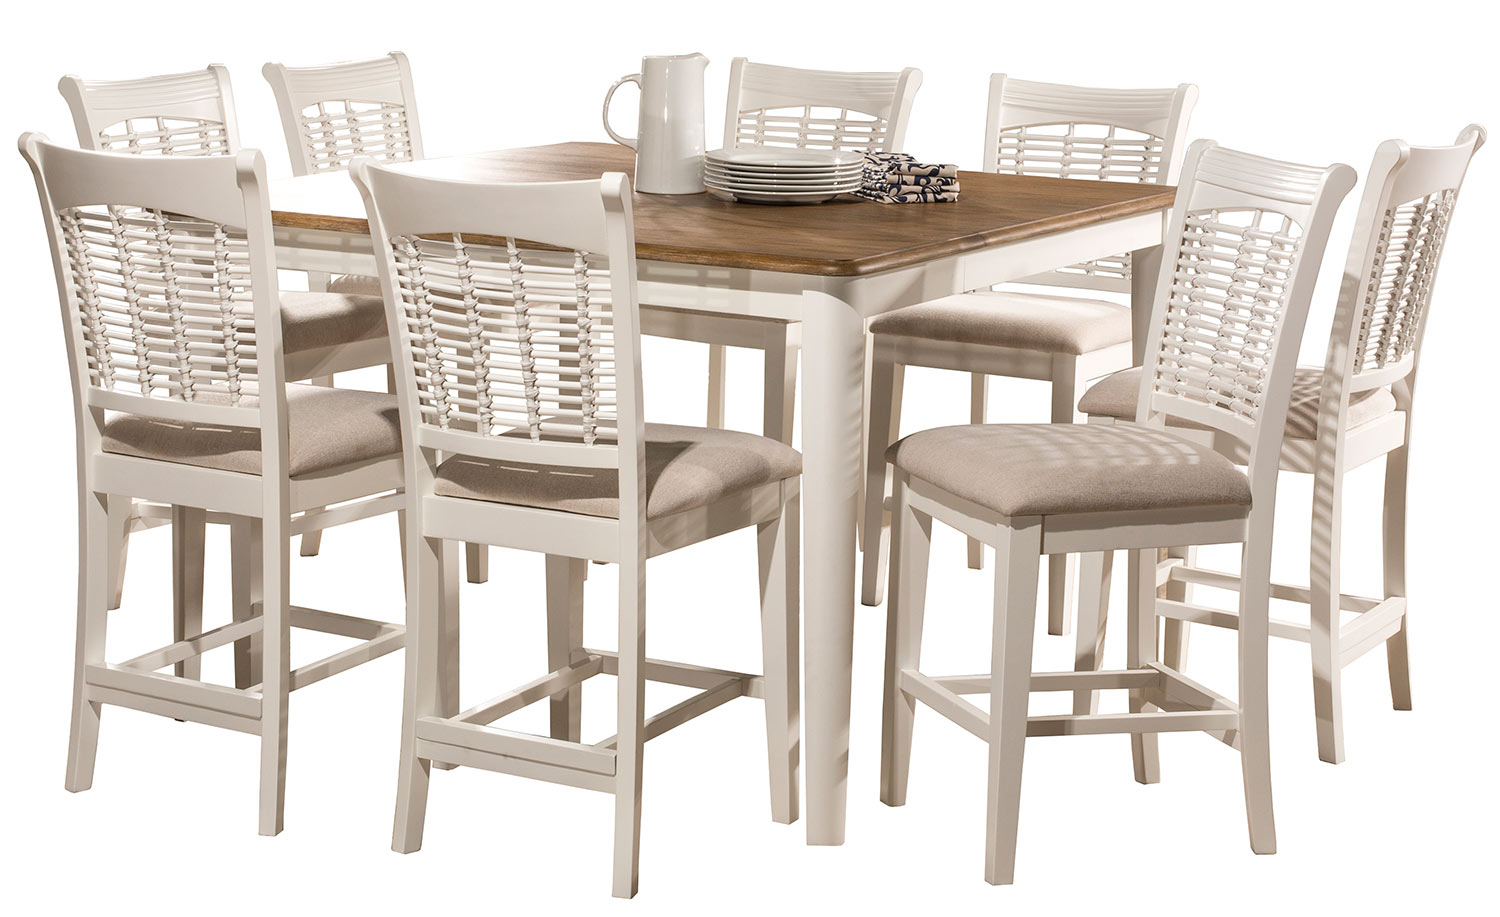 Hillsdale Bayberry 9-Piece Counter Height Dining Set - White/Driftwood